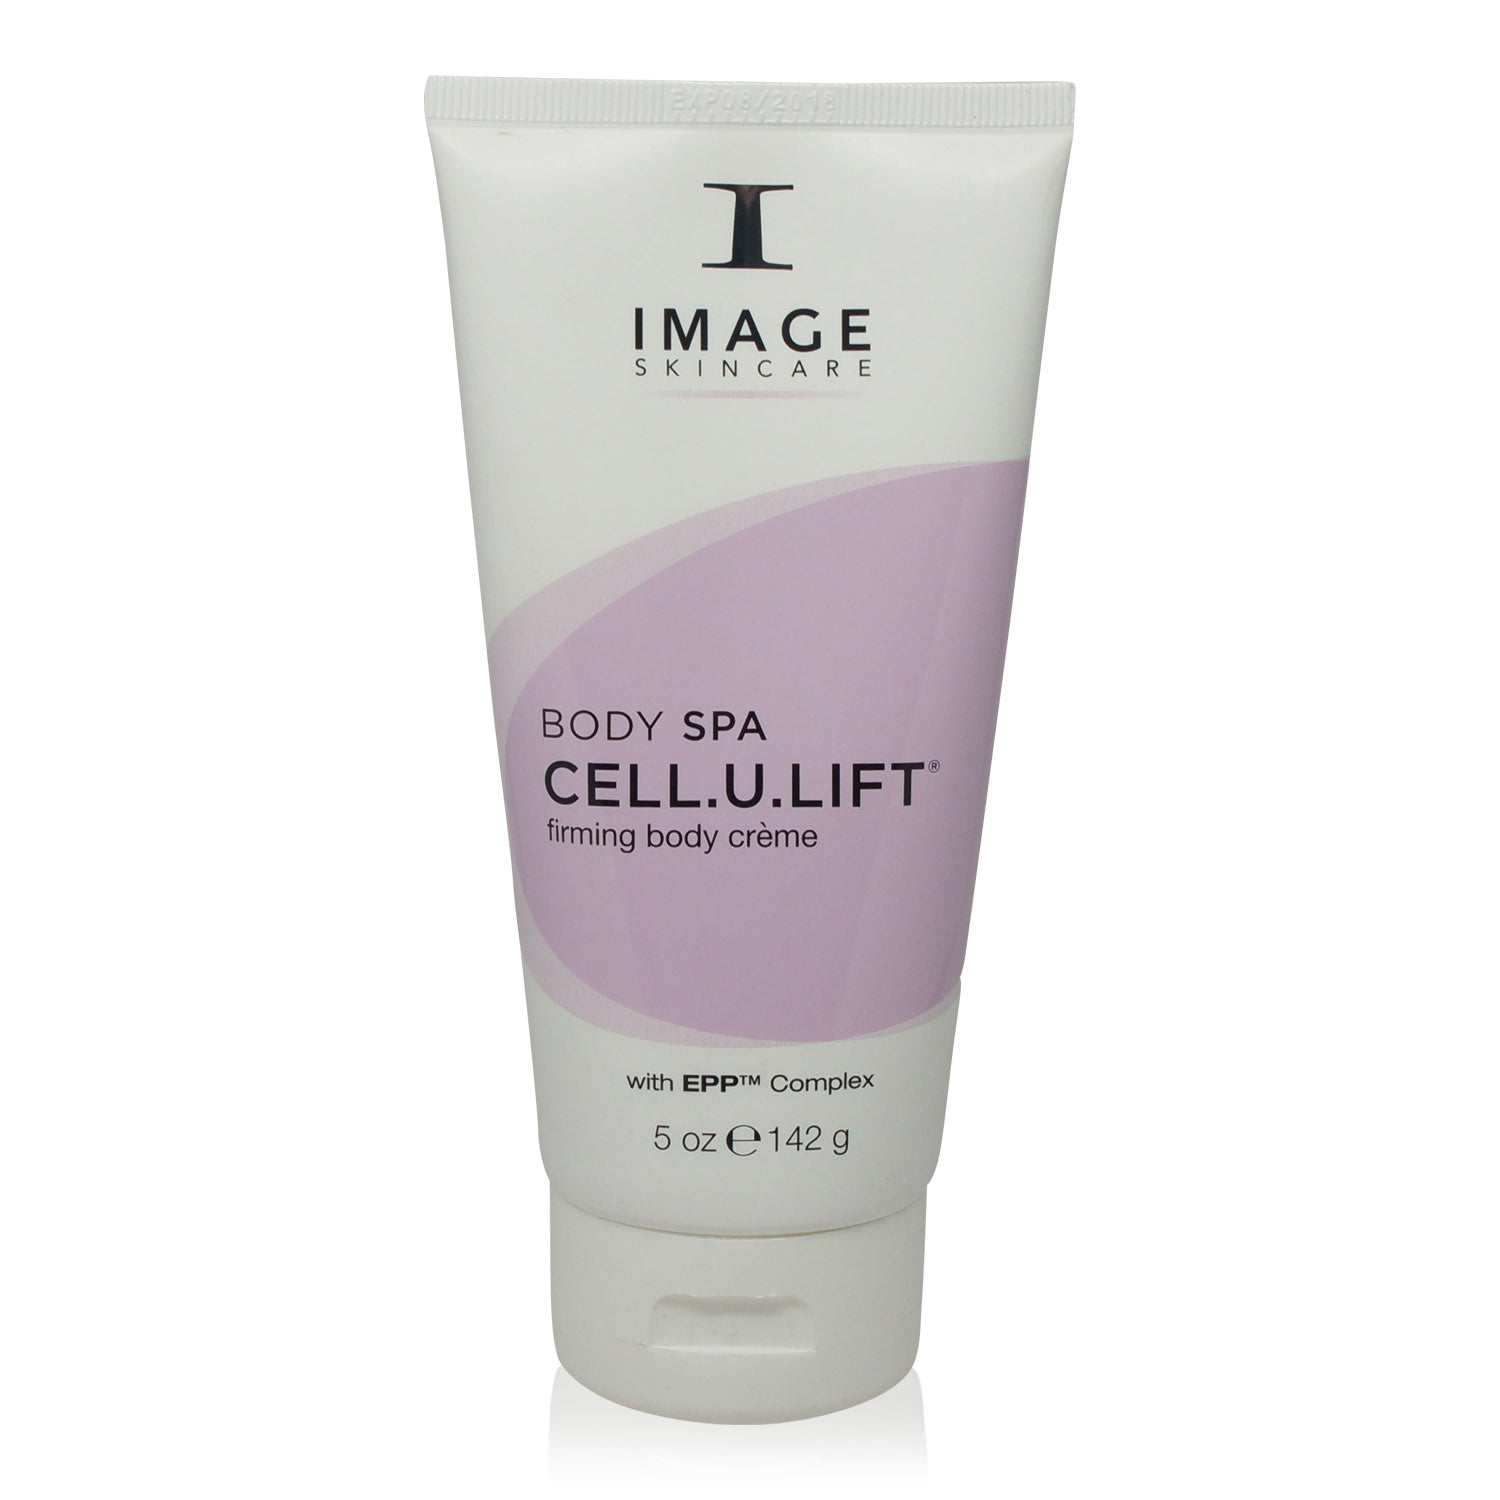 IMAGE ~ BODY SPA ~ CELL.U.LIFT FIRMING BODY LOTION ~ 5OZ